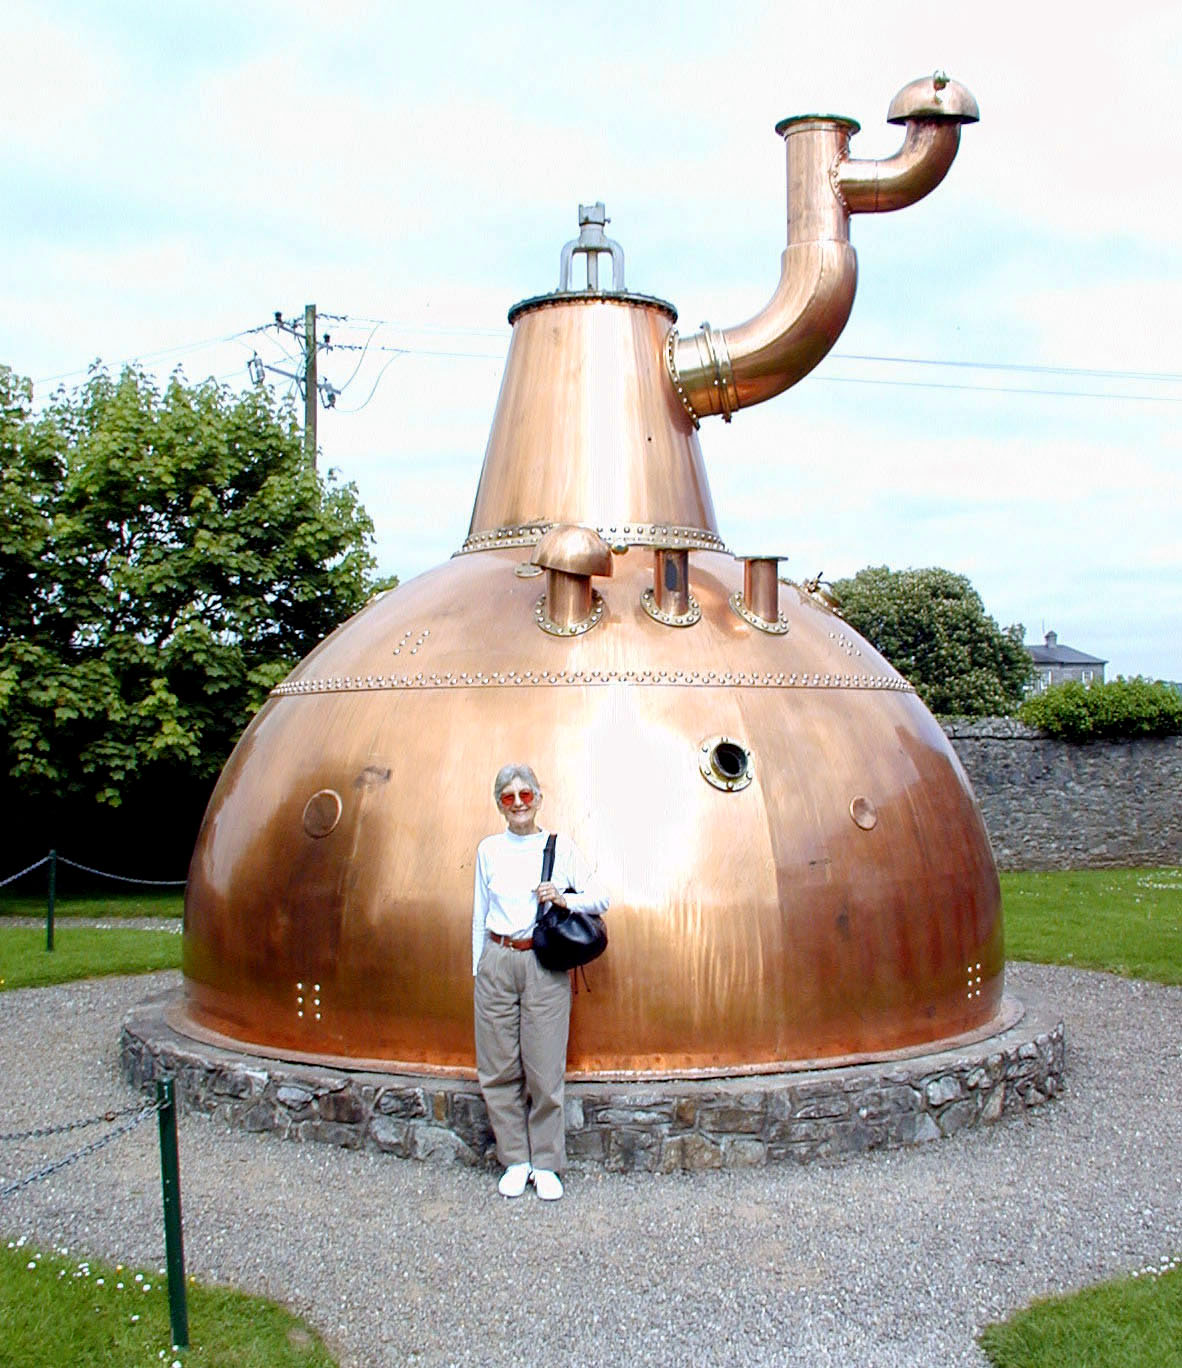 May 17.  At the Old Midleton Distillery, home of Jameson Irish Whiskey, is this large copper pot.  Inside is the largest copper pot in the world, much larger than this one.